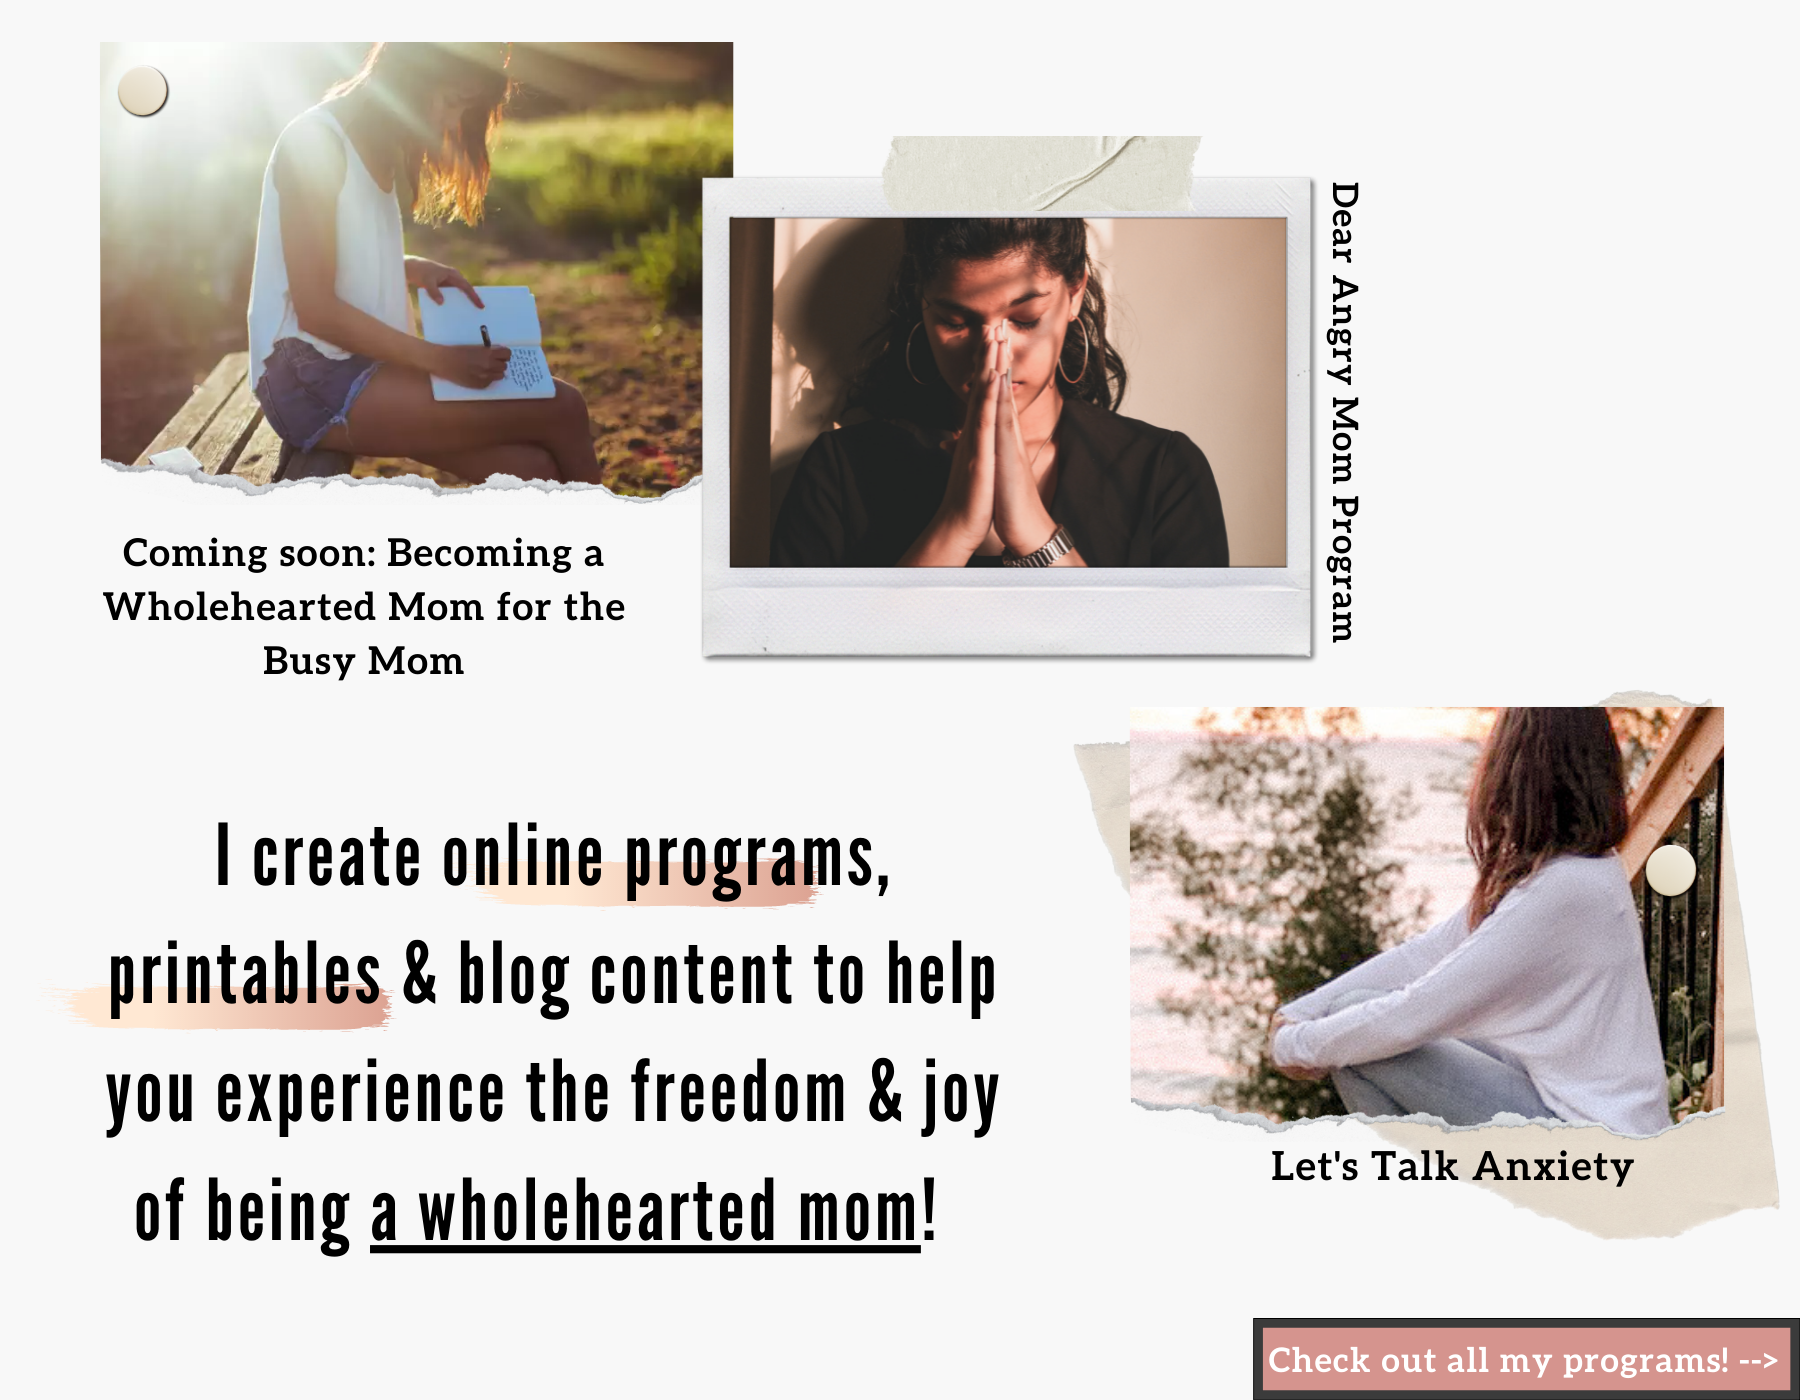 I create online programs, printables, and blog content to help you become a wholehearted mom